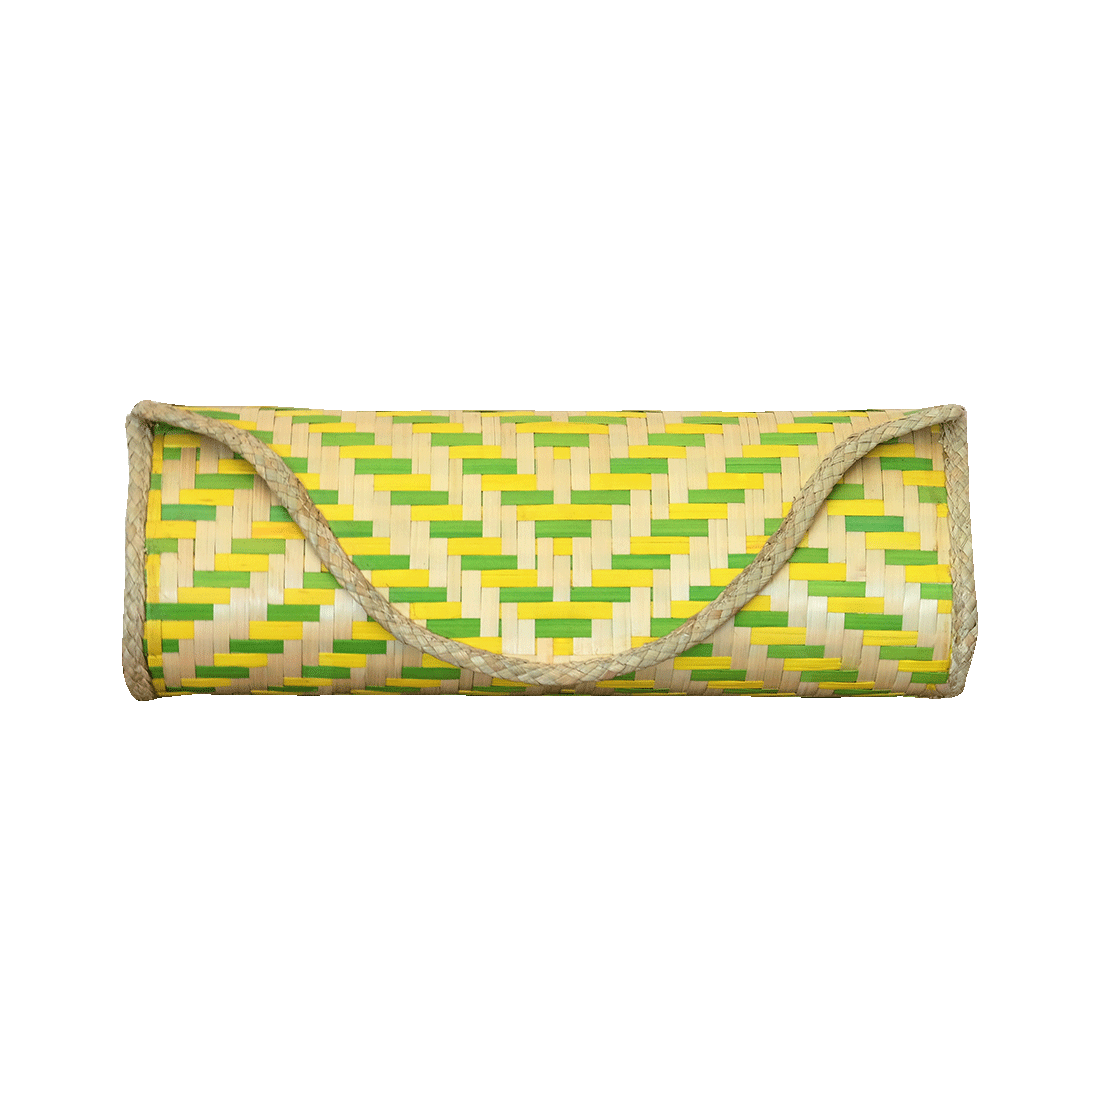 Bamboo Skin Maya Clutch - Lime Yellow